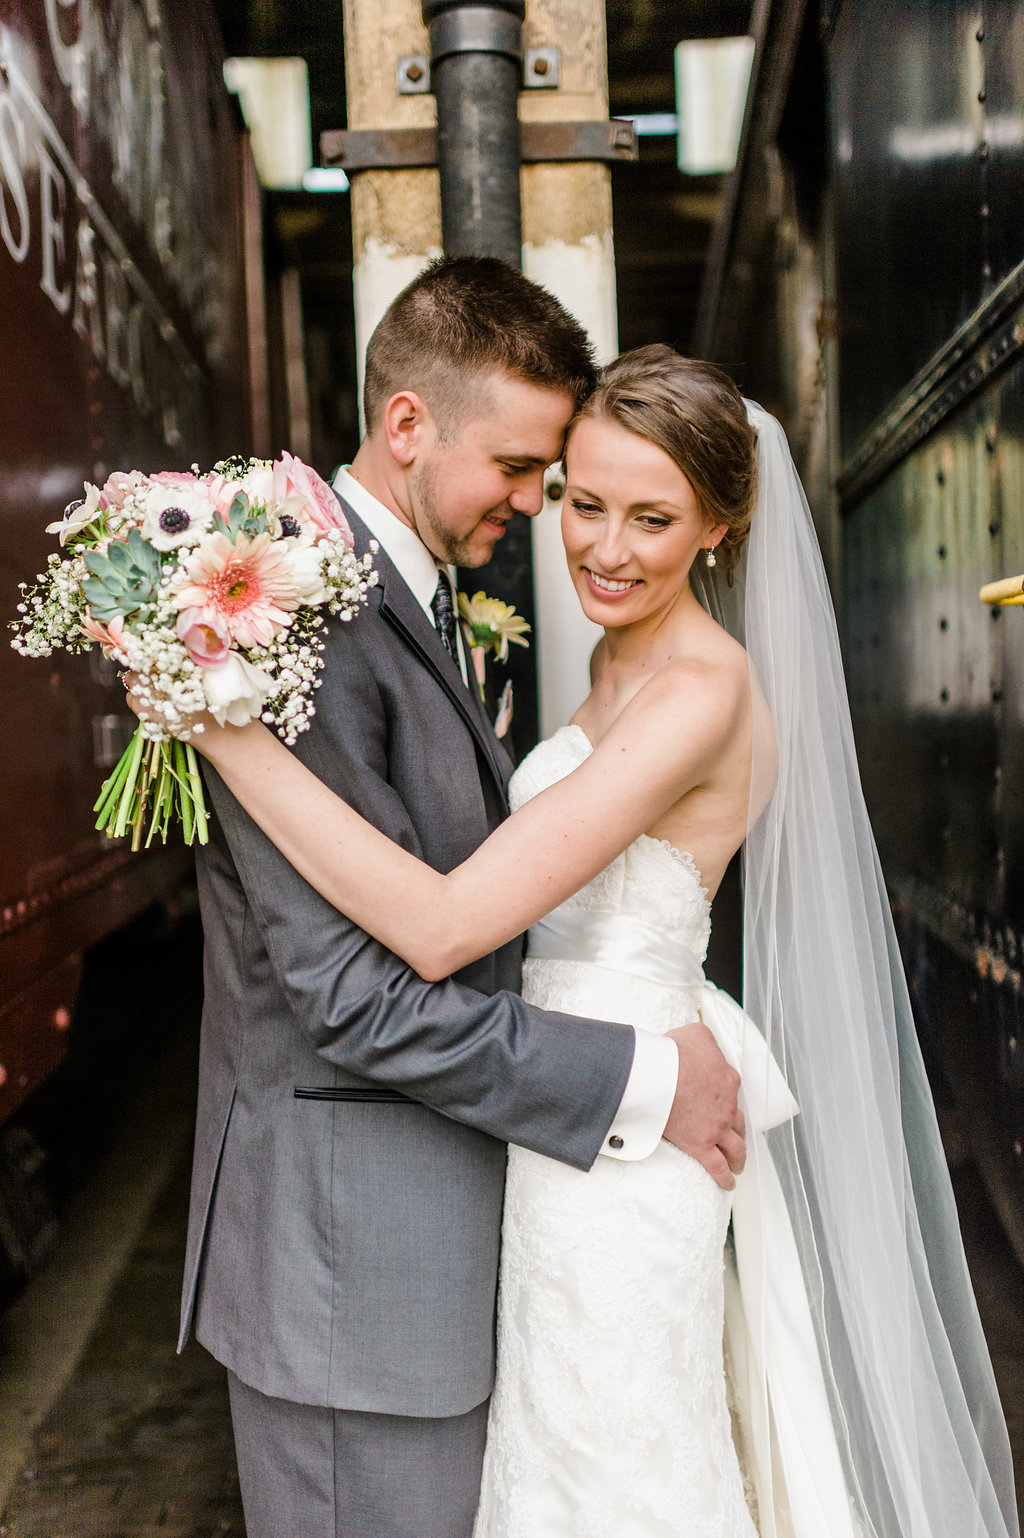 rach-lea-photography-rach-loves-troy-roundhouse-railroad-museum-wedding-ivory-and-beau-savannah-wedding-planner-savannah-weddings-savannah-florist-ivory-and-beau-bridal-boutique-succulent-blush-wedding-25.jpg